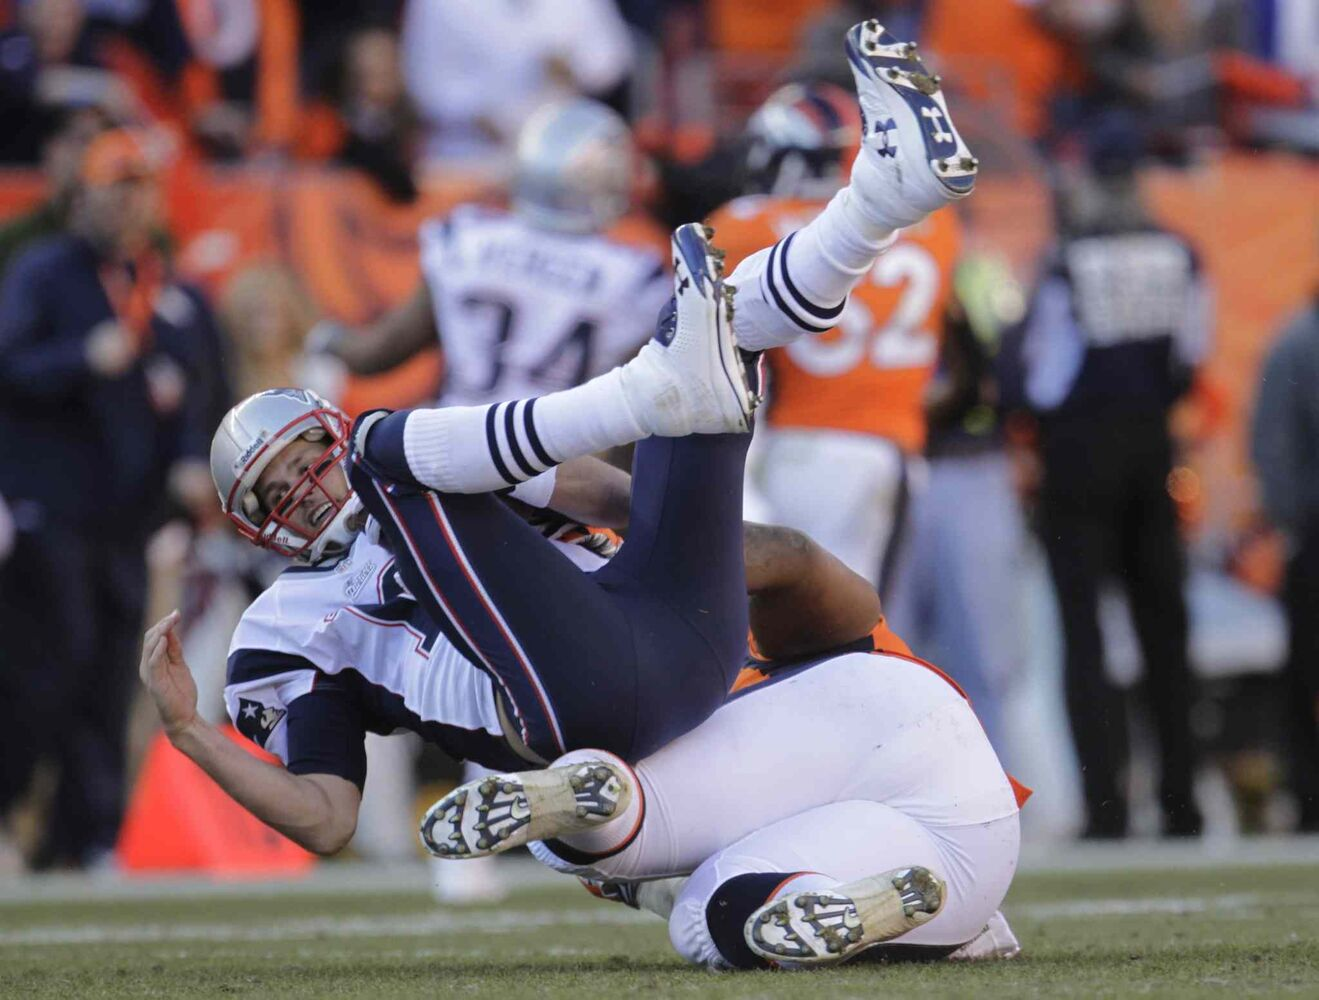 Patriots QB Tom Brady is sacked by Broncos defensive tackle Terrance Knighton. (Joe Mahoney / The Associated Press)